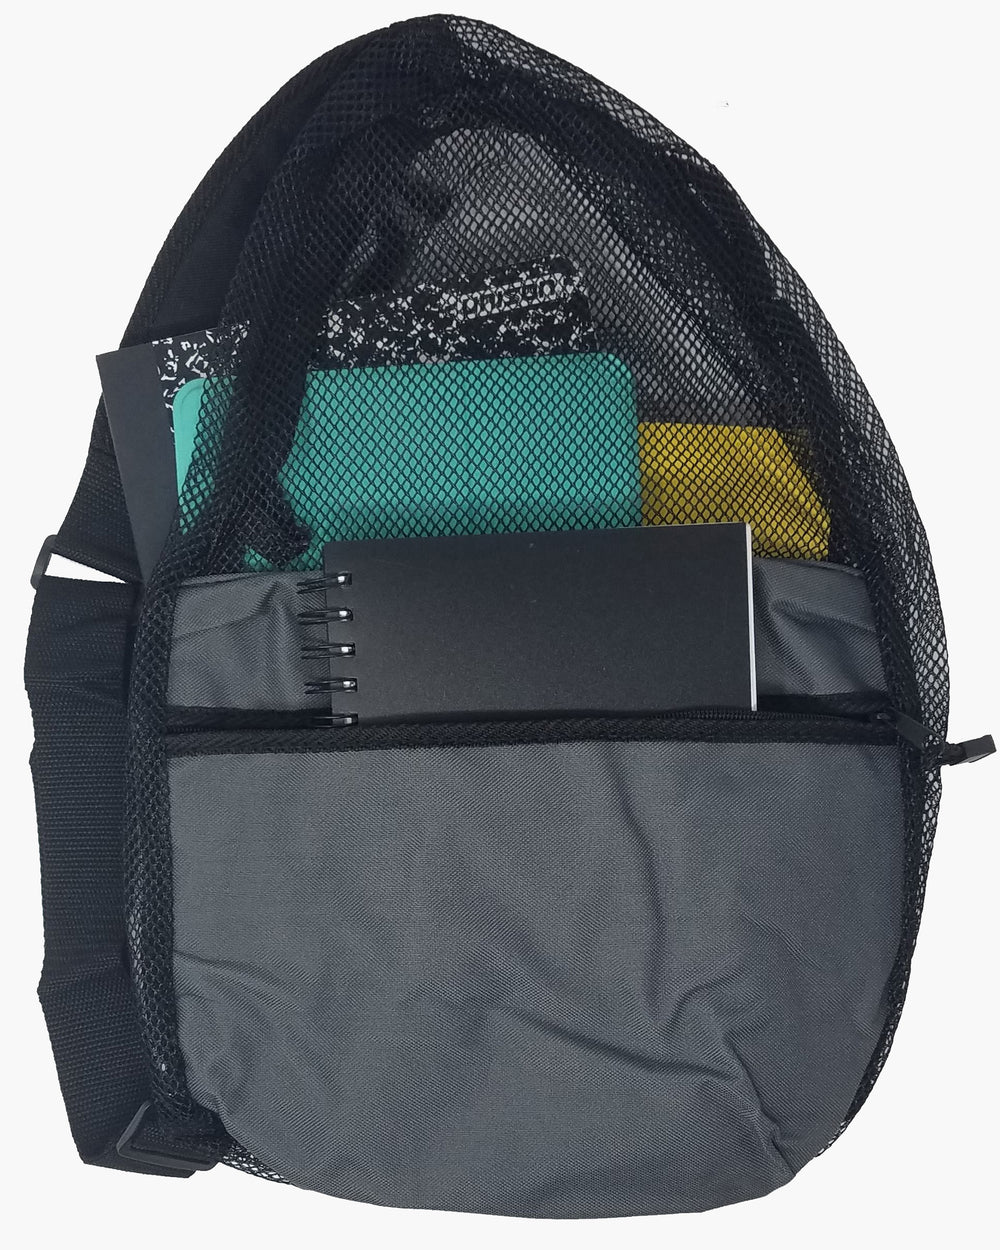 ImpecGear Polyester Small Lightweight Zippered Travel Portable Mesh Backpack (Multiple Colors)